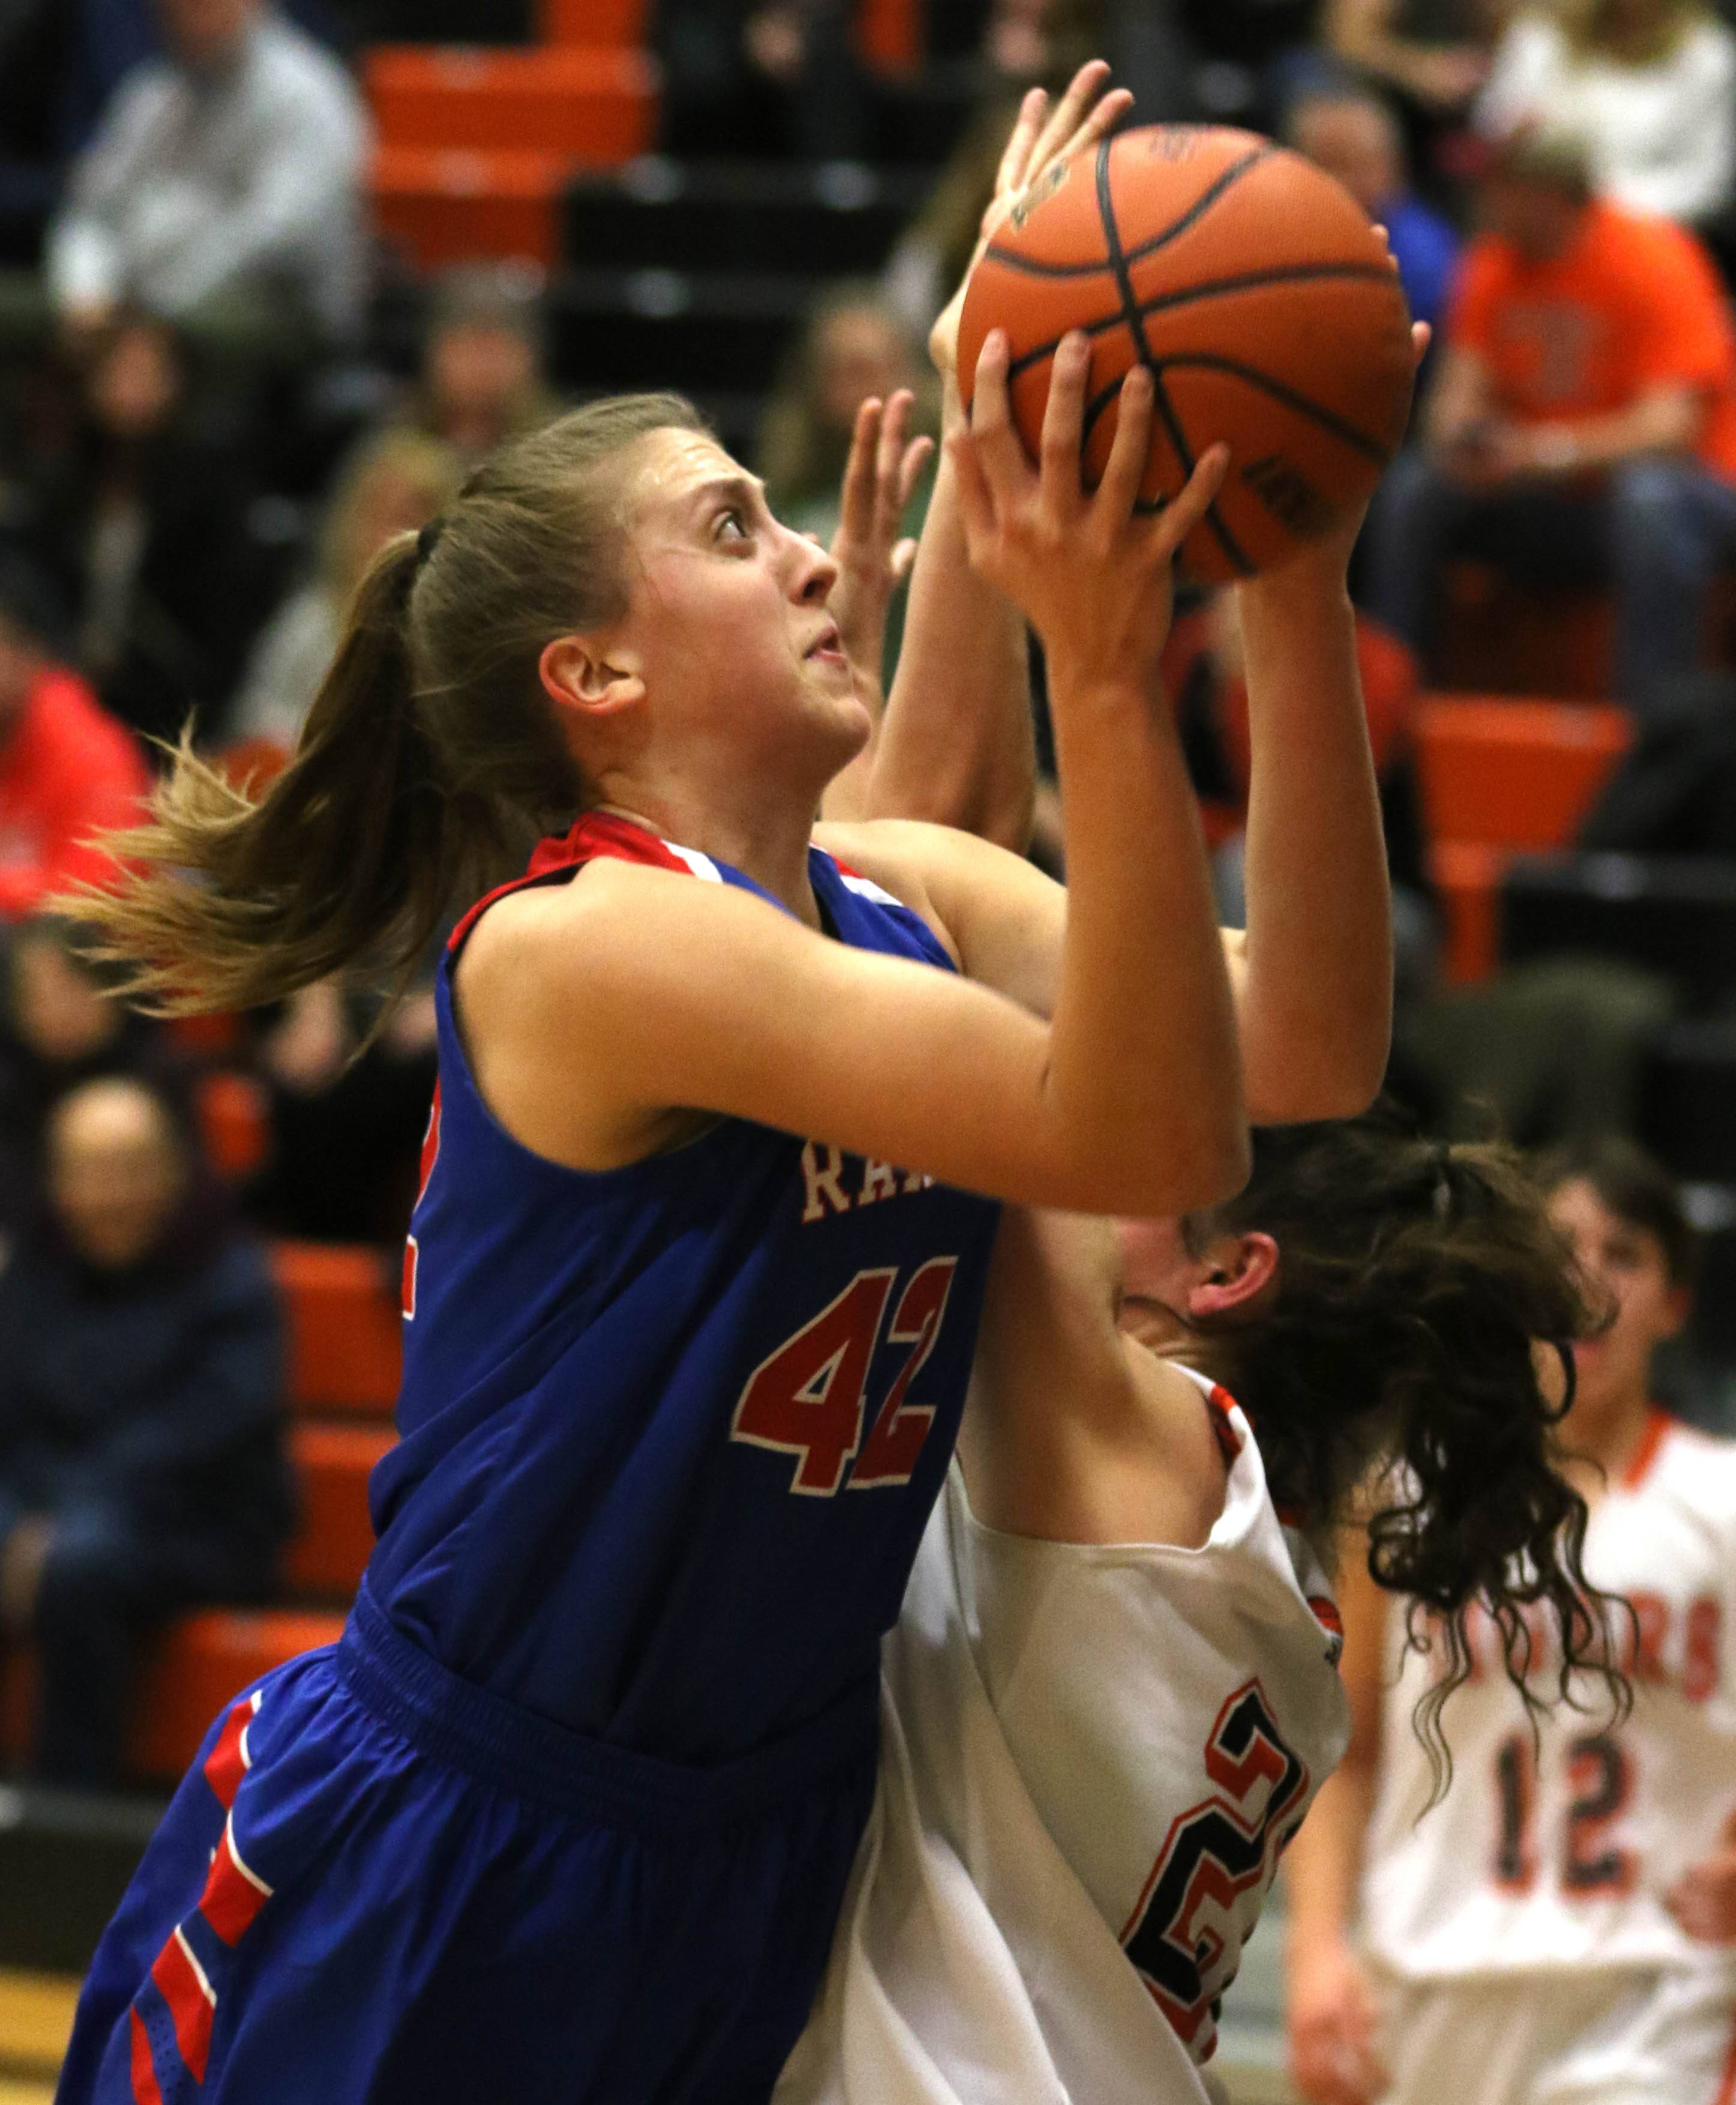 Glenbard South's Maggie Bair moves to the hoop during varsity girls basketball at Wheaton Warrenville South High School Wednesday evening.